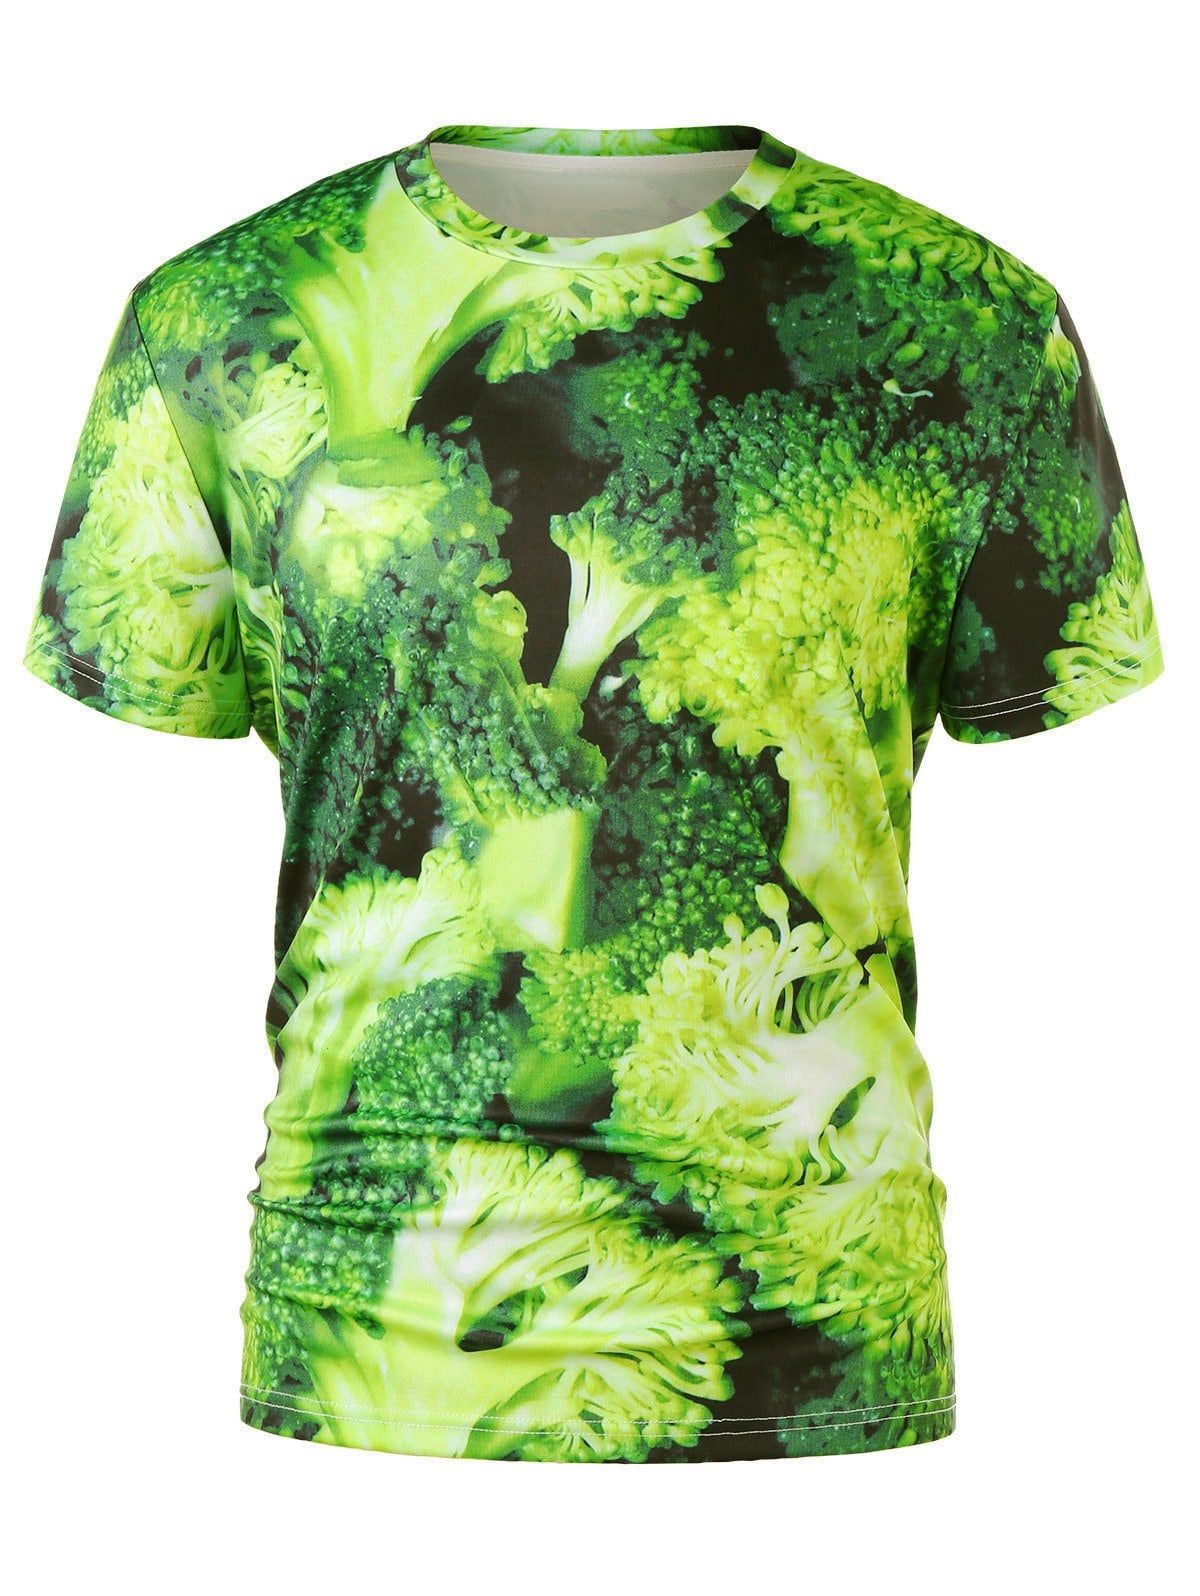 5dc89c3c4b7a 3D Broccoli Print Crew Neck T-shirt - GREEN SNAKE 2XL